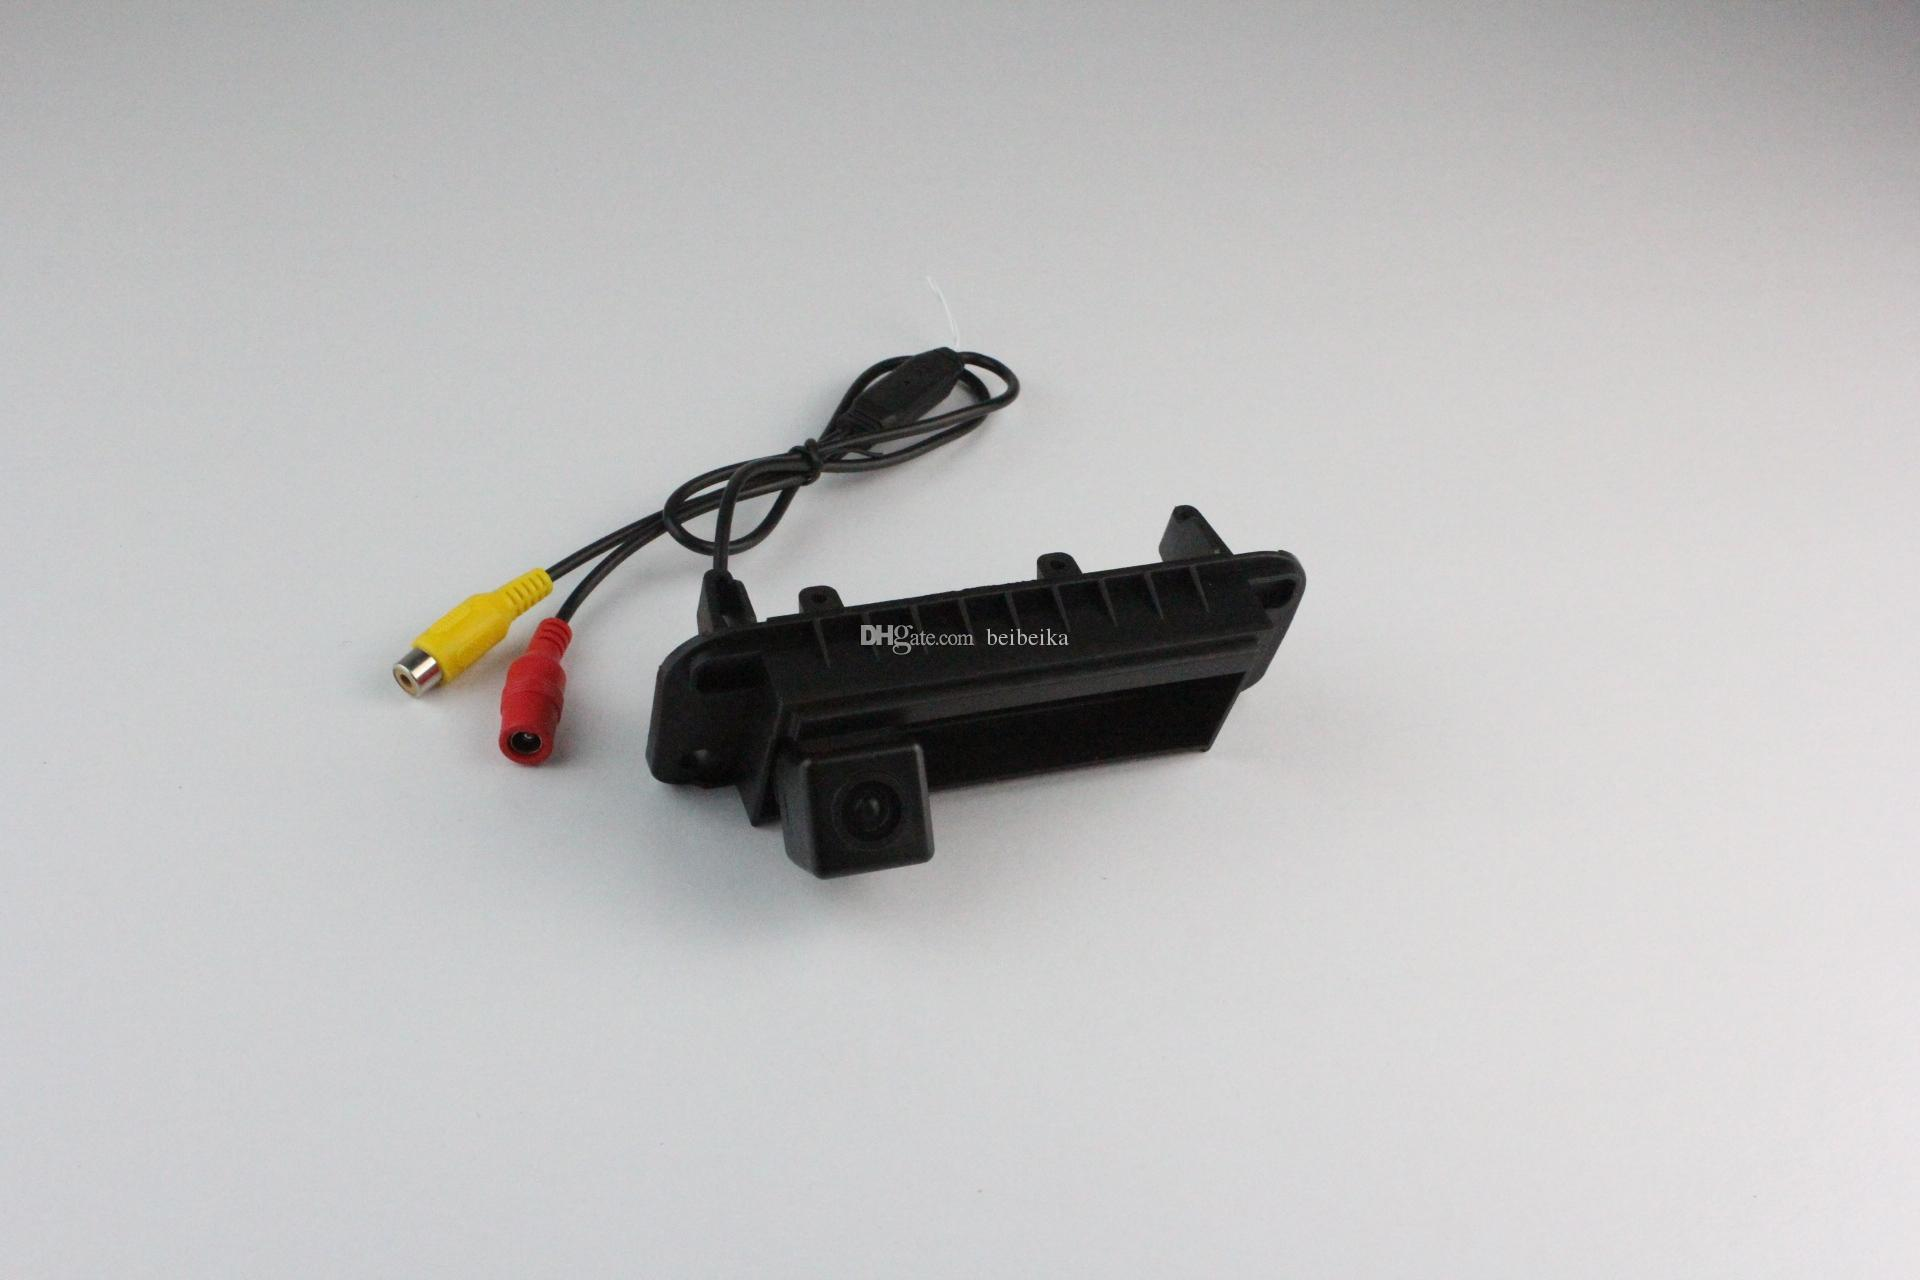 2018 car rear view camera for mercedes benz c class w205 w204 2018 car rear view camera for mercedes benz c class w205 w204 reverse camera hd ccd rca ntst pal trunk handle oem from beibeika 3609 dhgate cheapraybanclubmaster Image collections